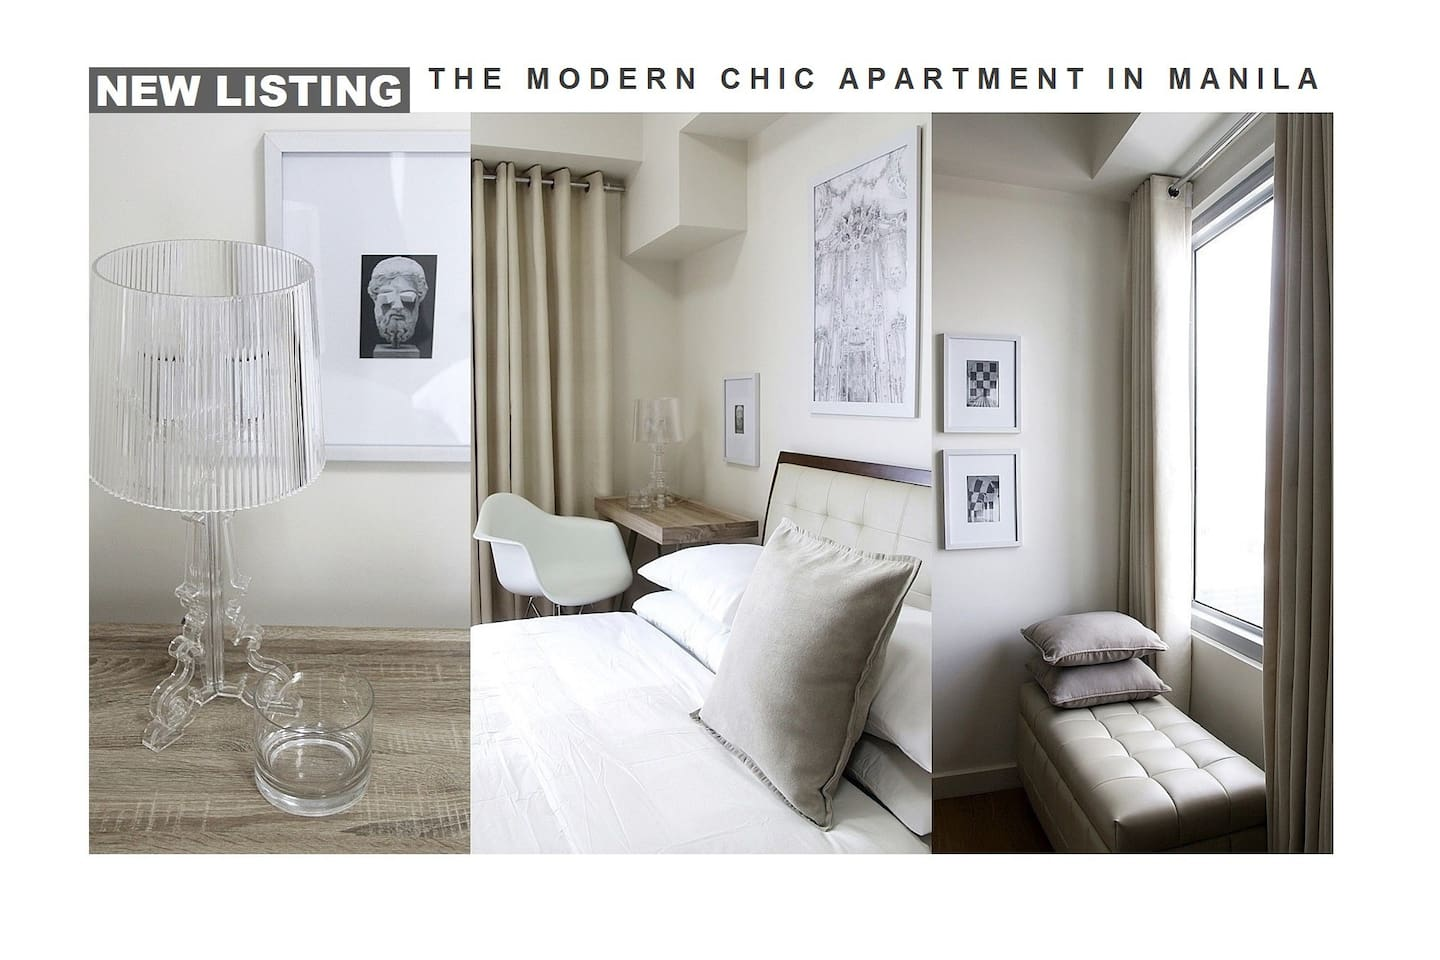 The Studio Apartment is very clean and well-designed for a stylish and comfortable atmosphere.